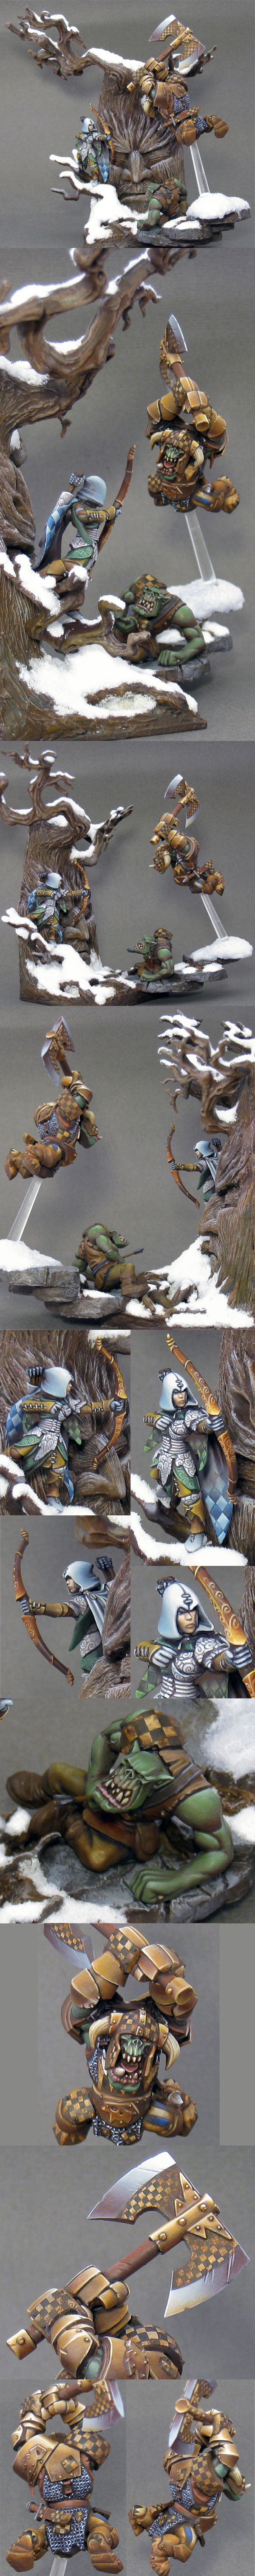 Too much noise in the woods...  Manufacturer: Games Workshop  by Nakatan - the freehand work is awesome!